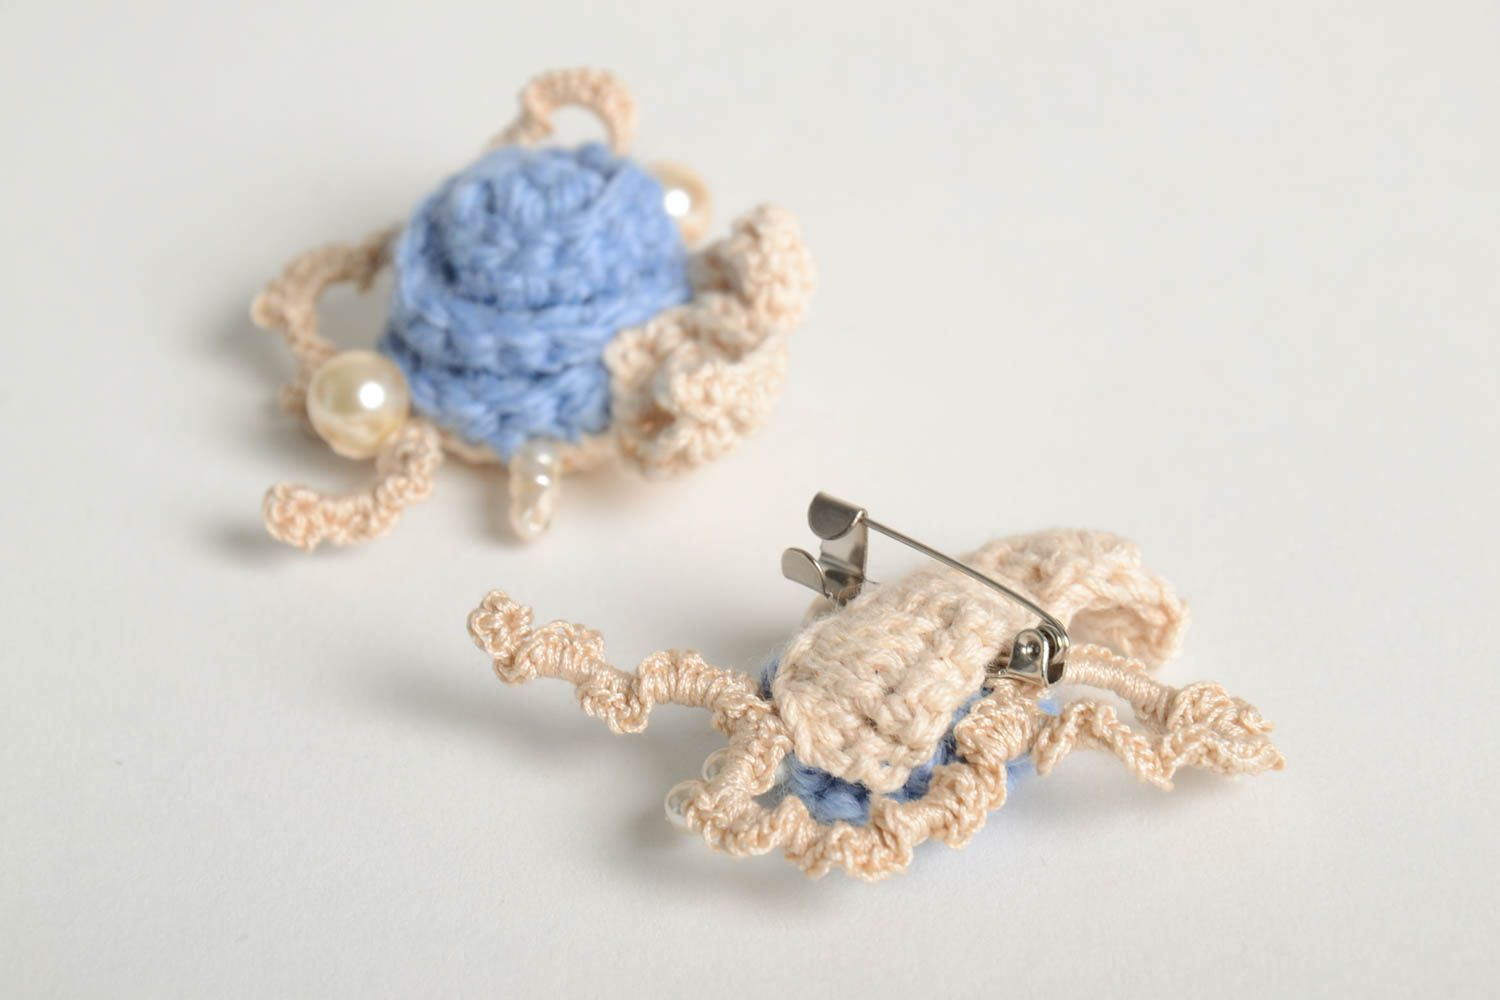 Fabric brooch handmade crocheted brooch textile brooches fashion accessories photo 3